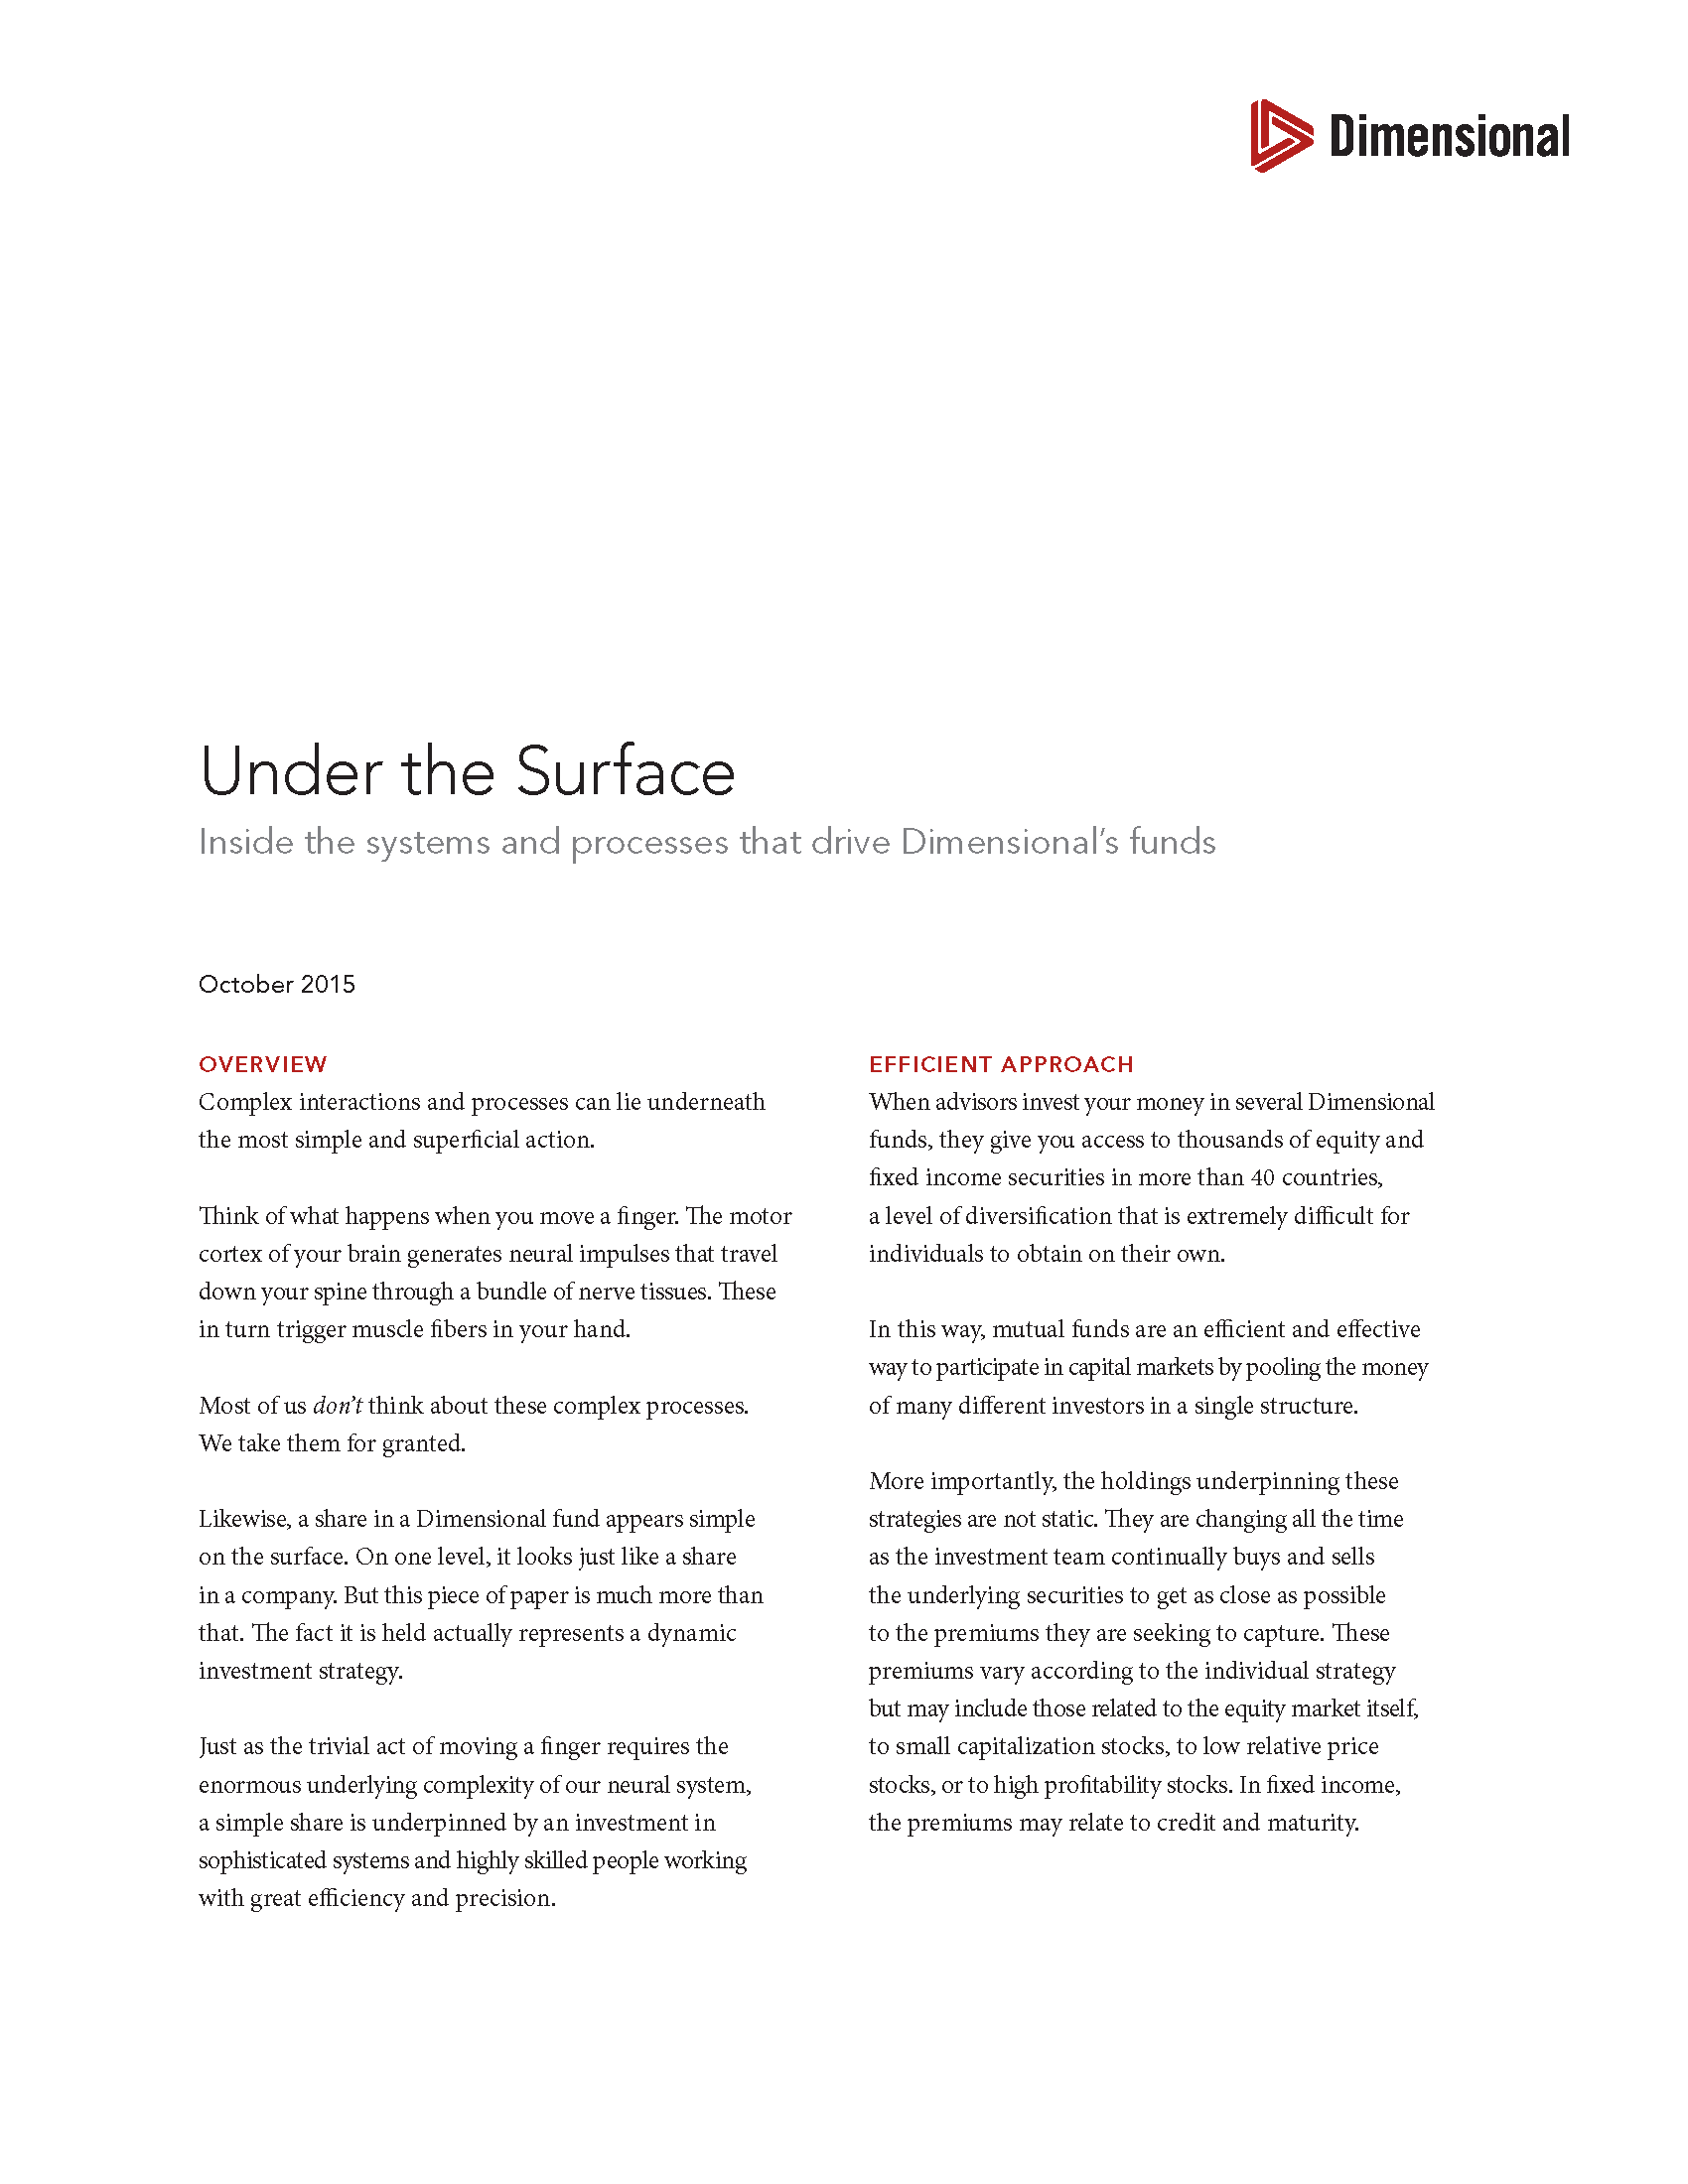 Issue_Brief_Under_the_Surface_Page_1